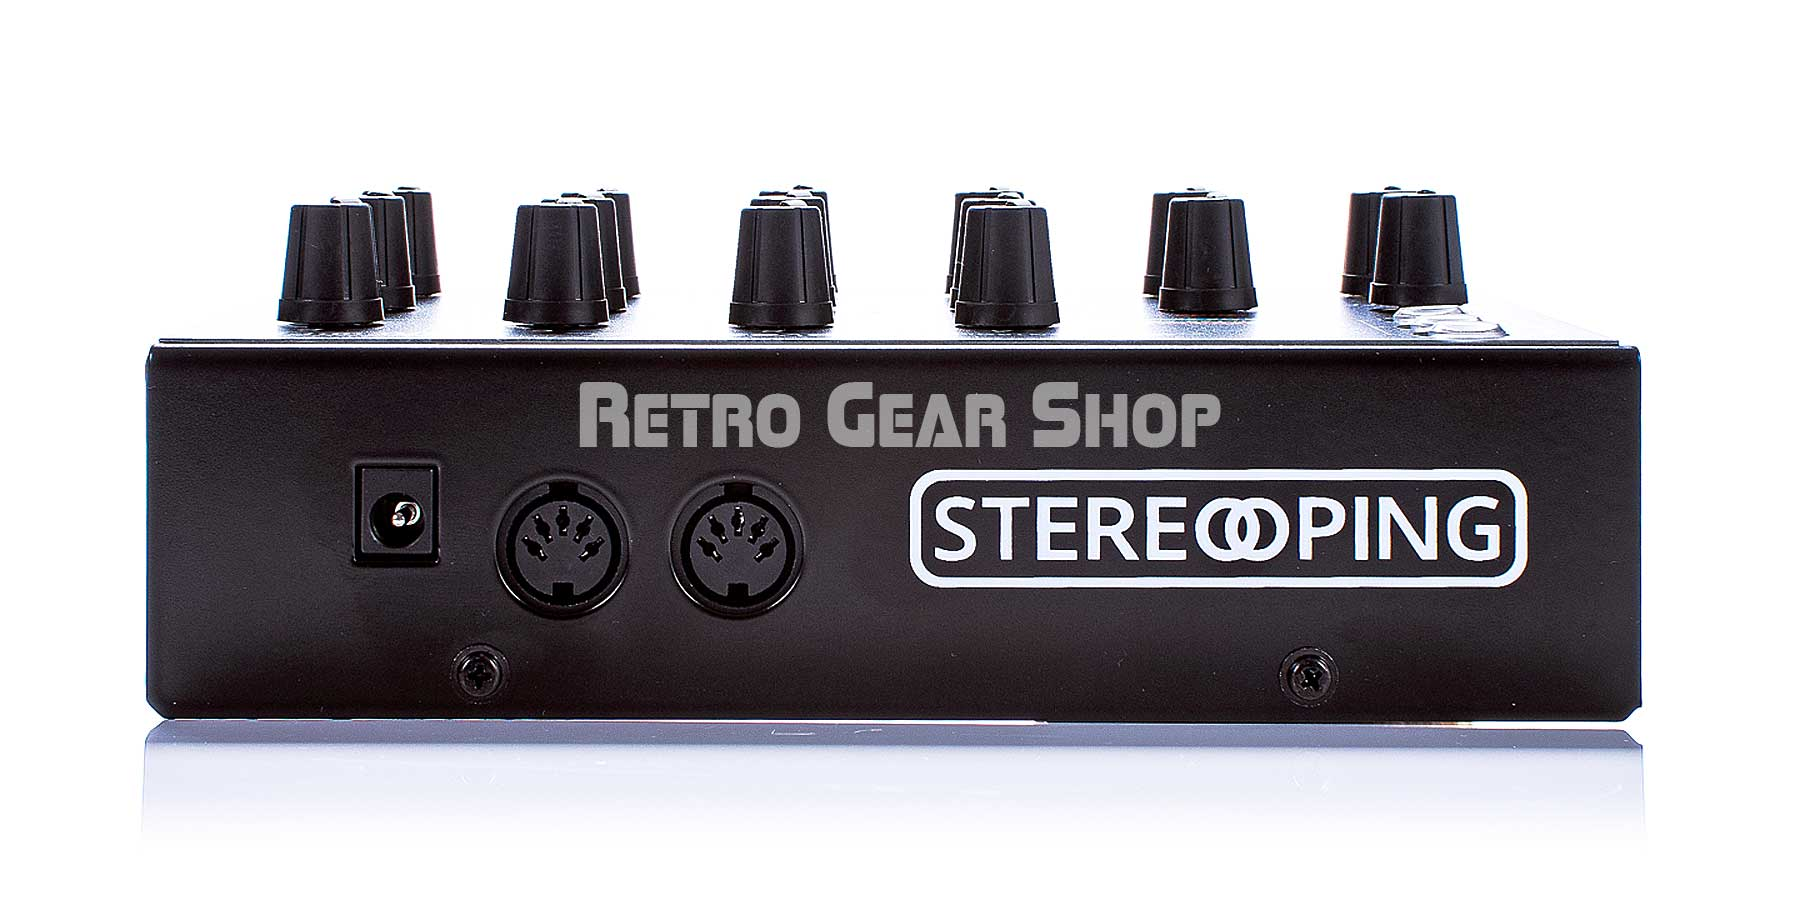 Stereoping CE-1 Super Quart7 Rear